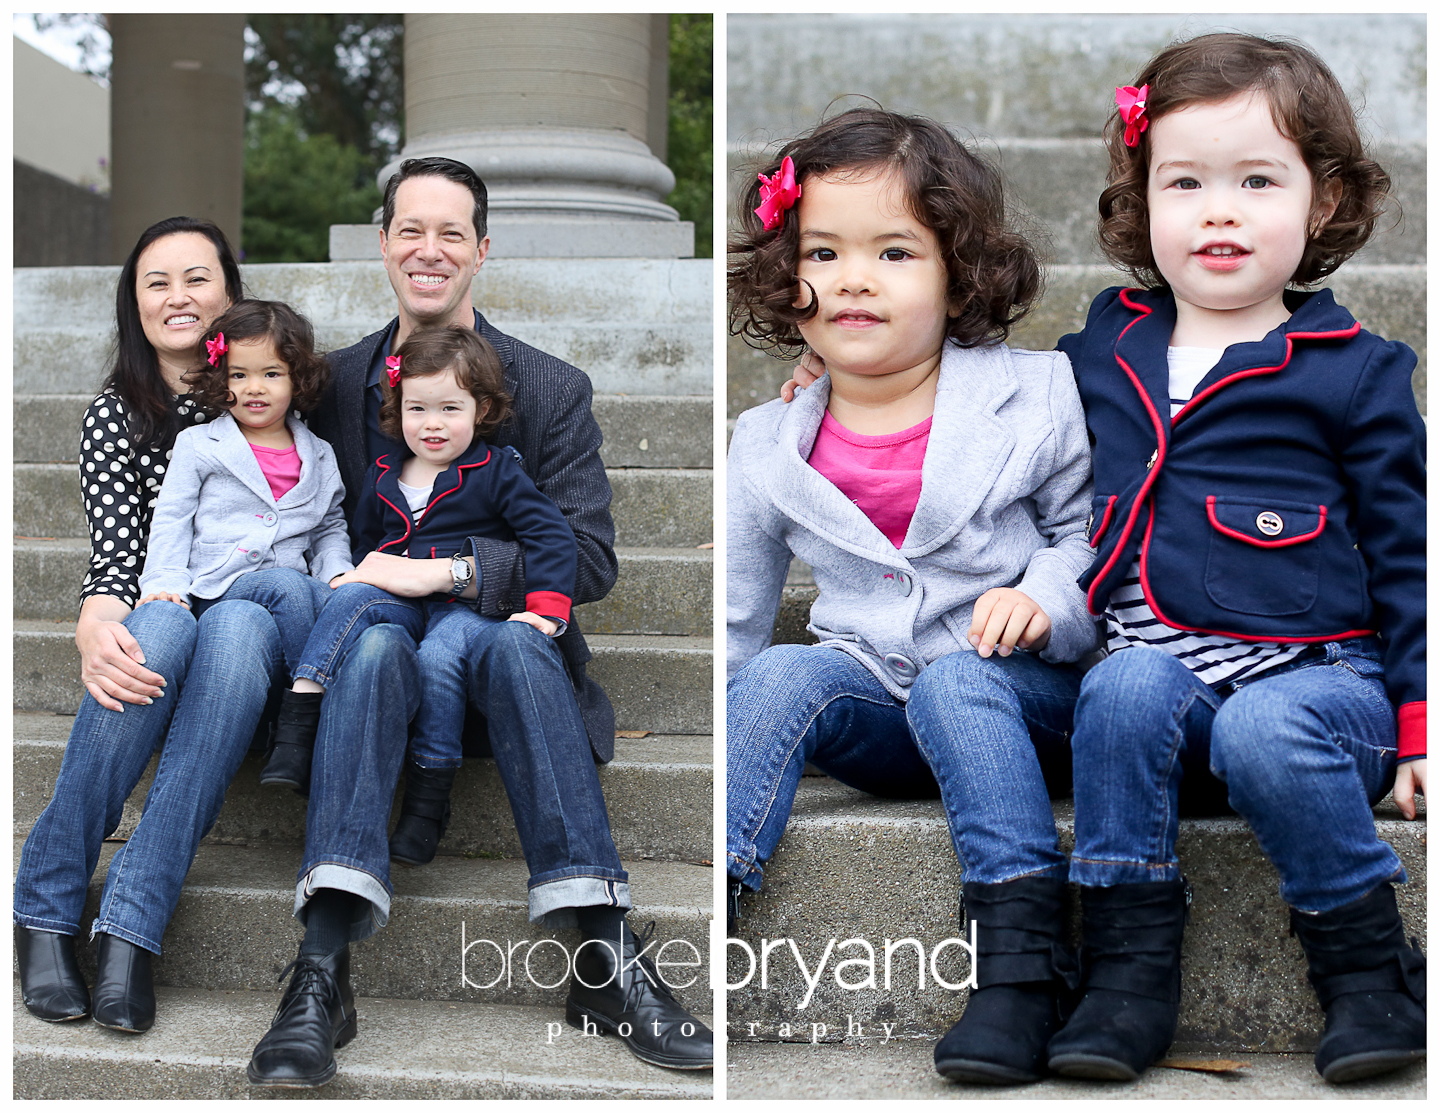 Brooke-Bryand-Photography-San-Francisco-Family-Photographer-2-up-harris-twins.jpg-1.jpg